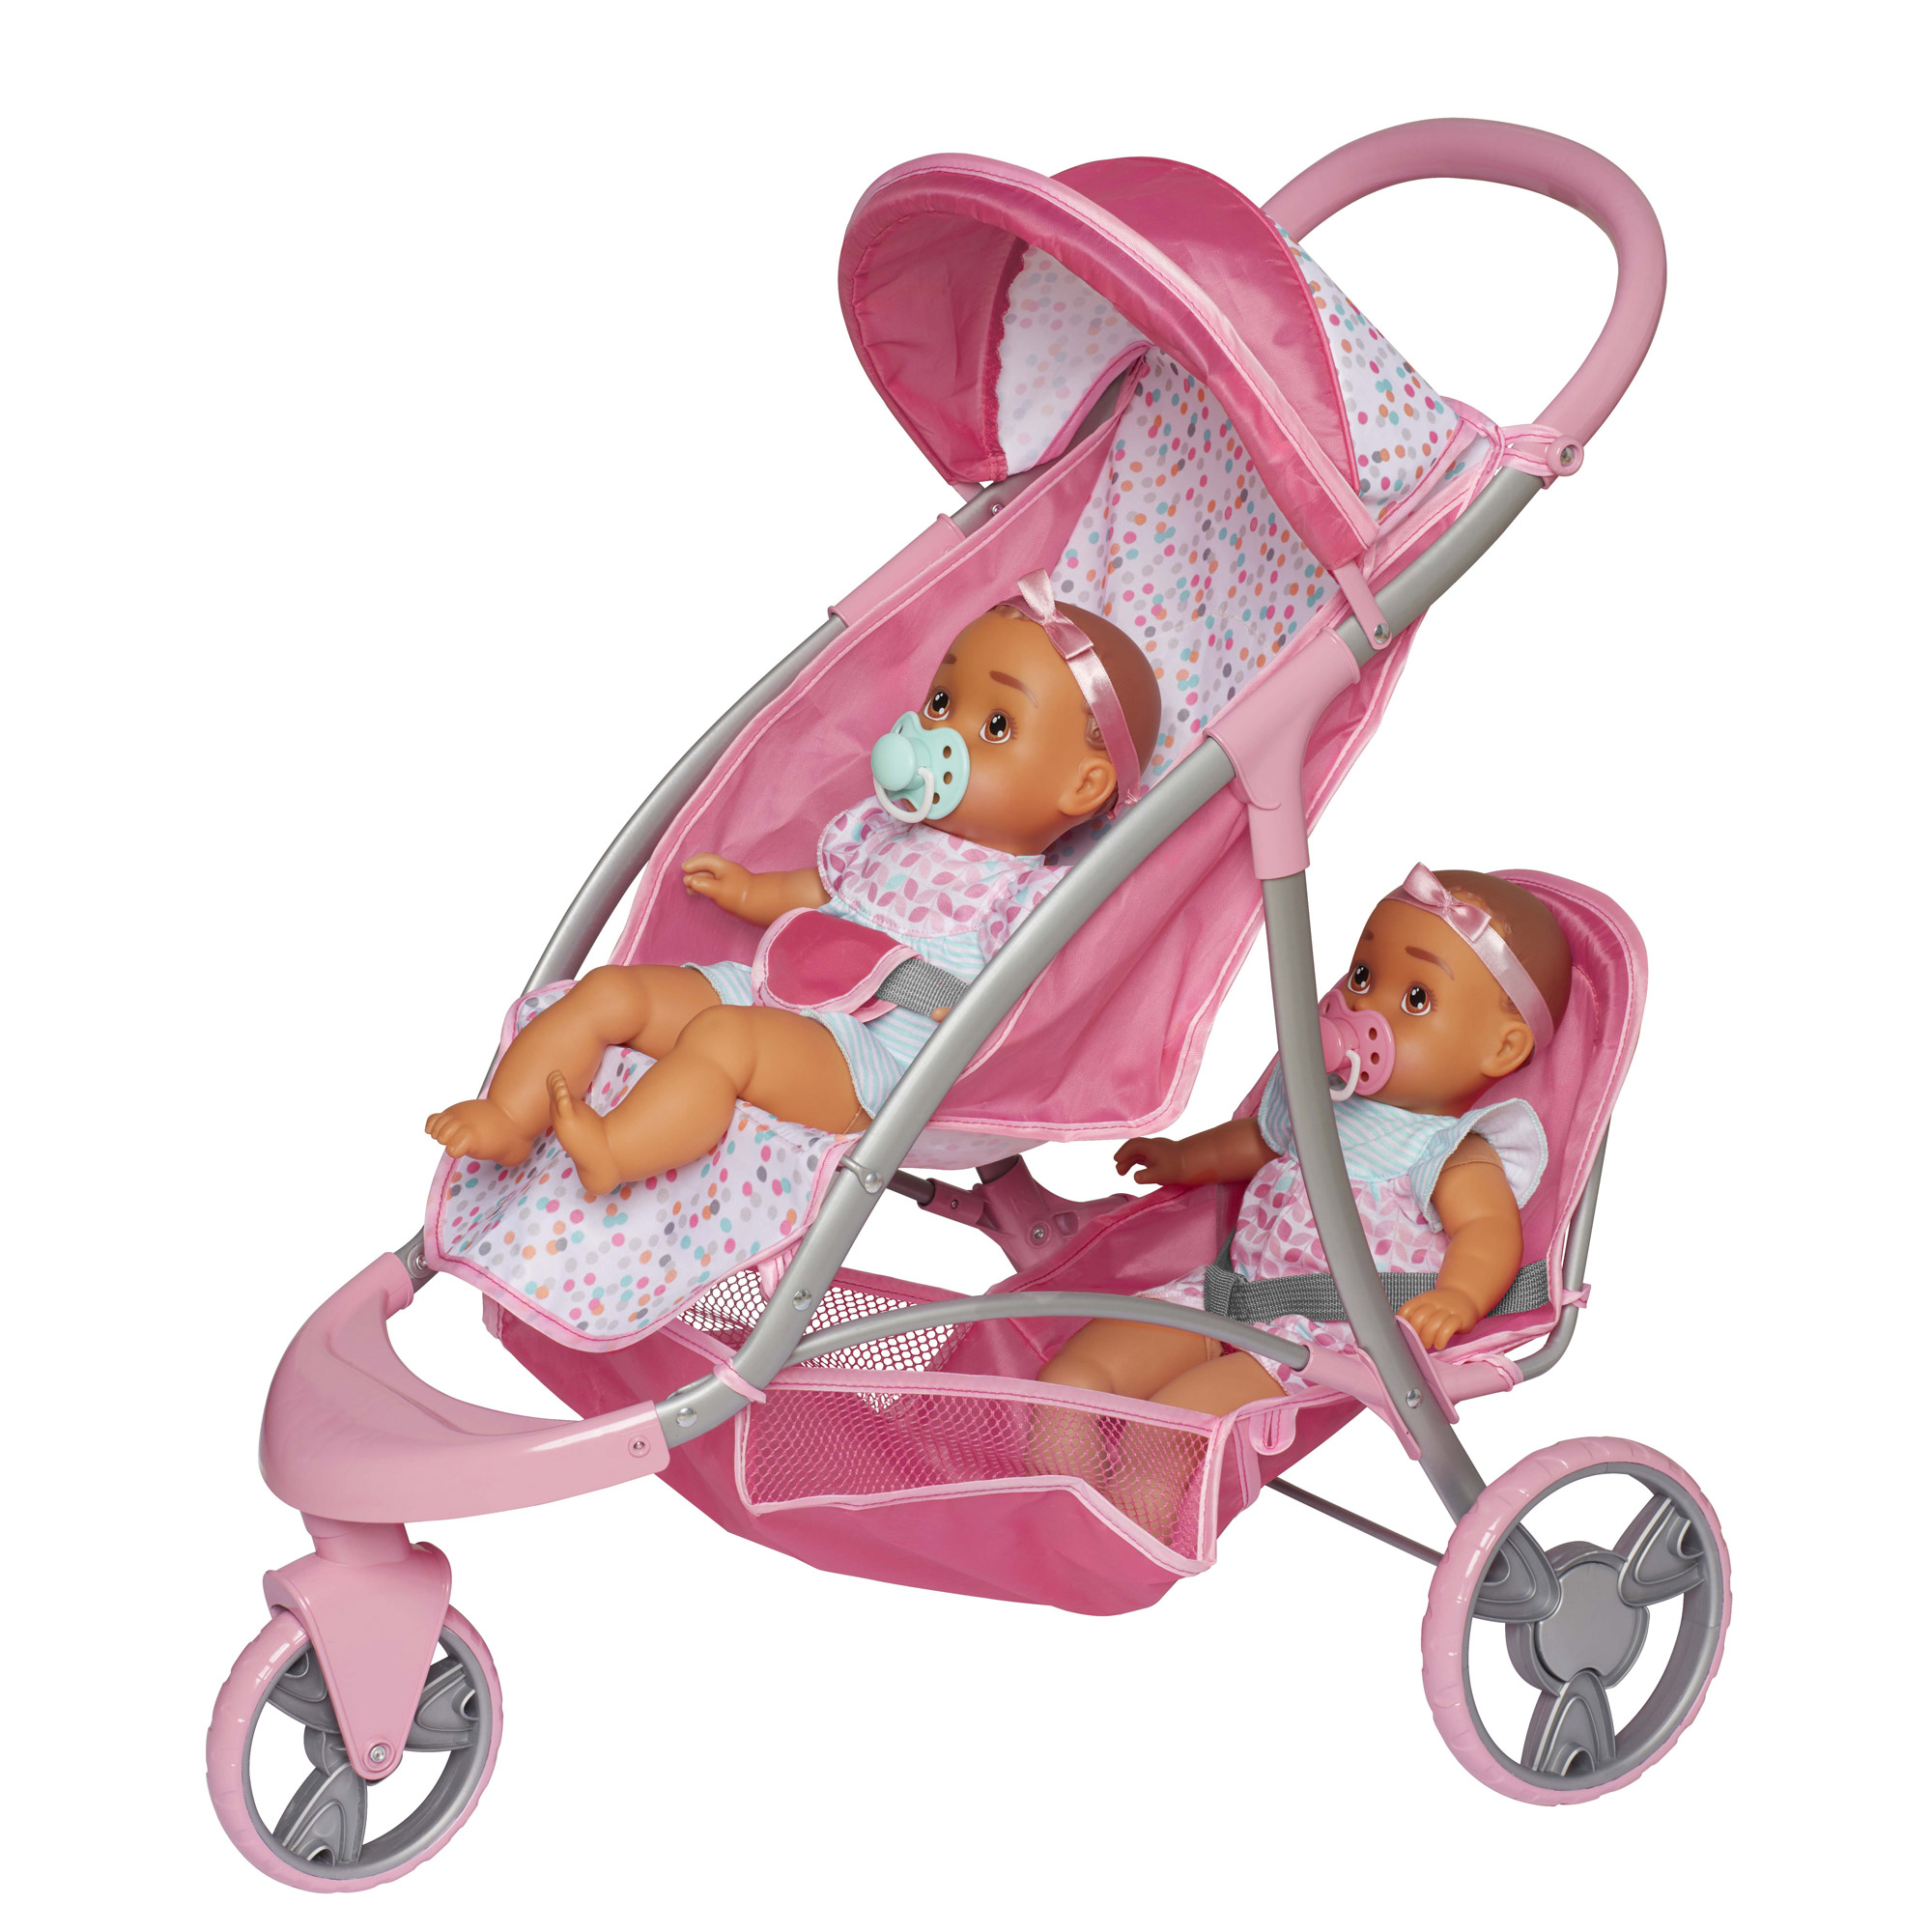 Perfectly Cute Baby Doll Double Stroller/Jogger